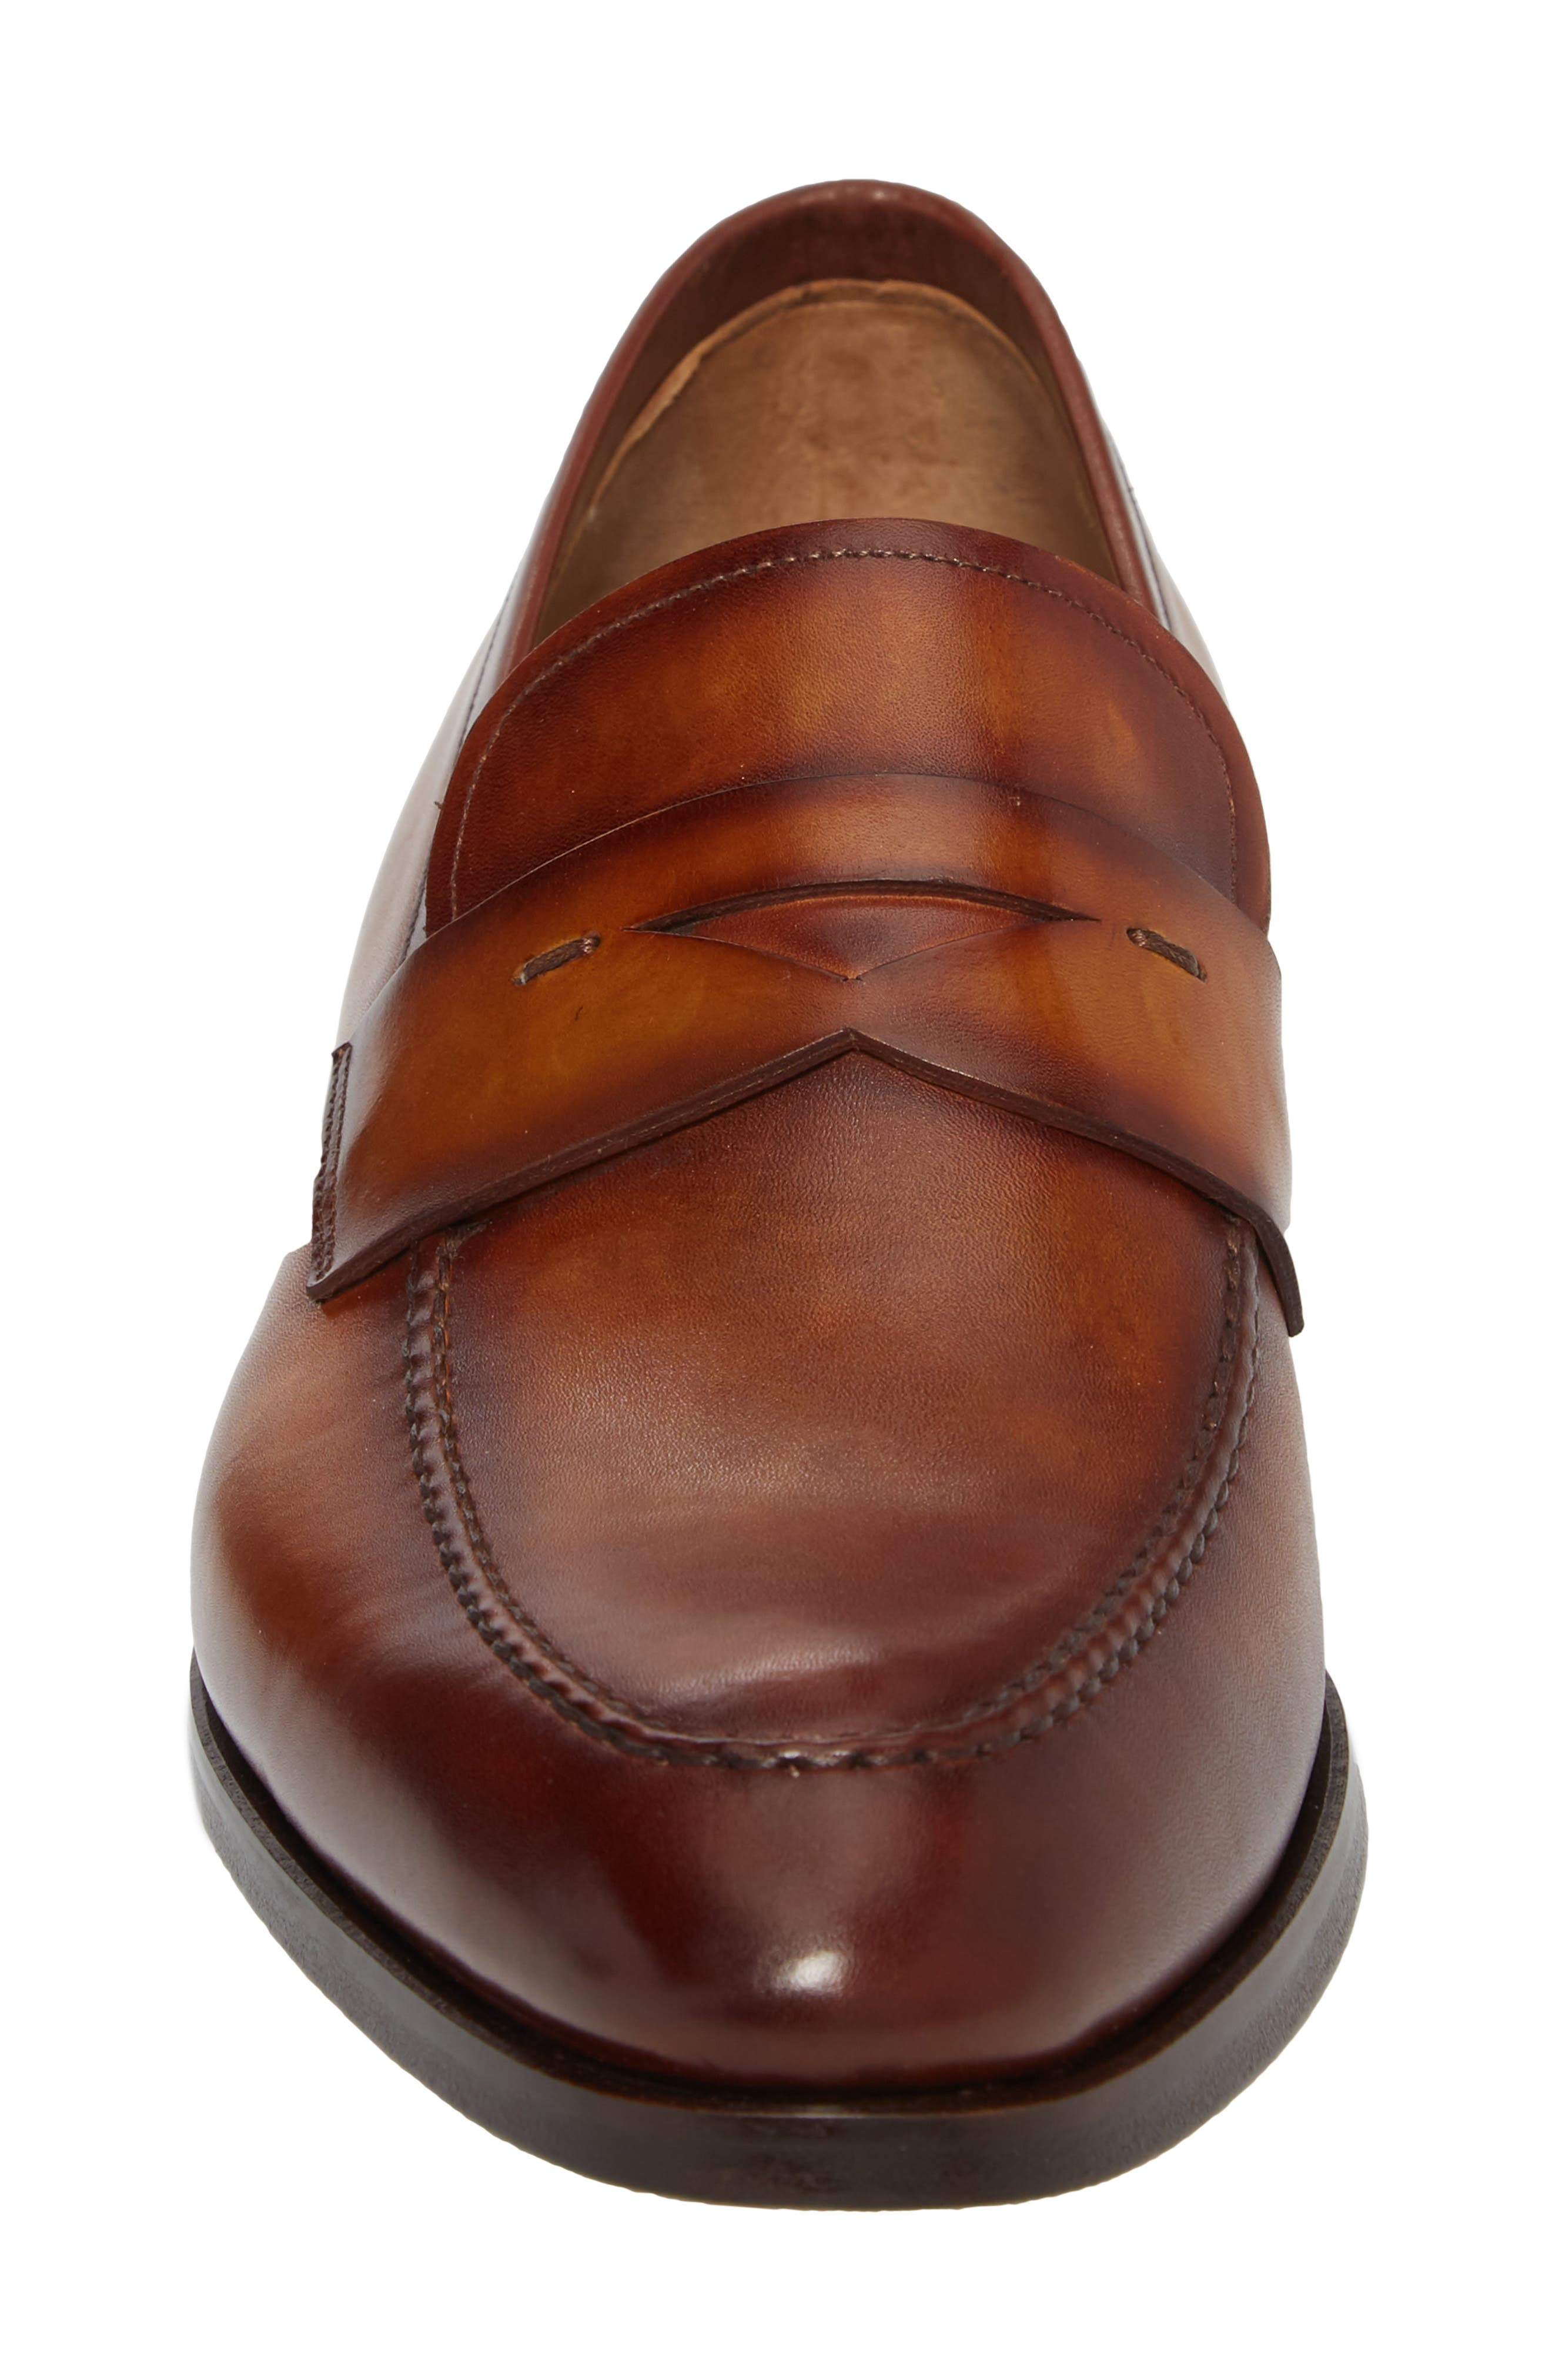 Rolly Apron Toe Penny Loafer,                             Alternate thumbnail 4, color,                             Brown Leather